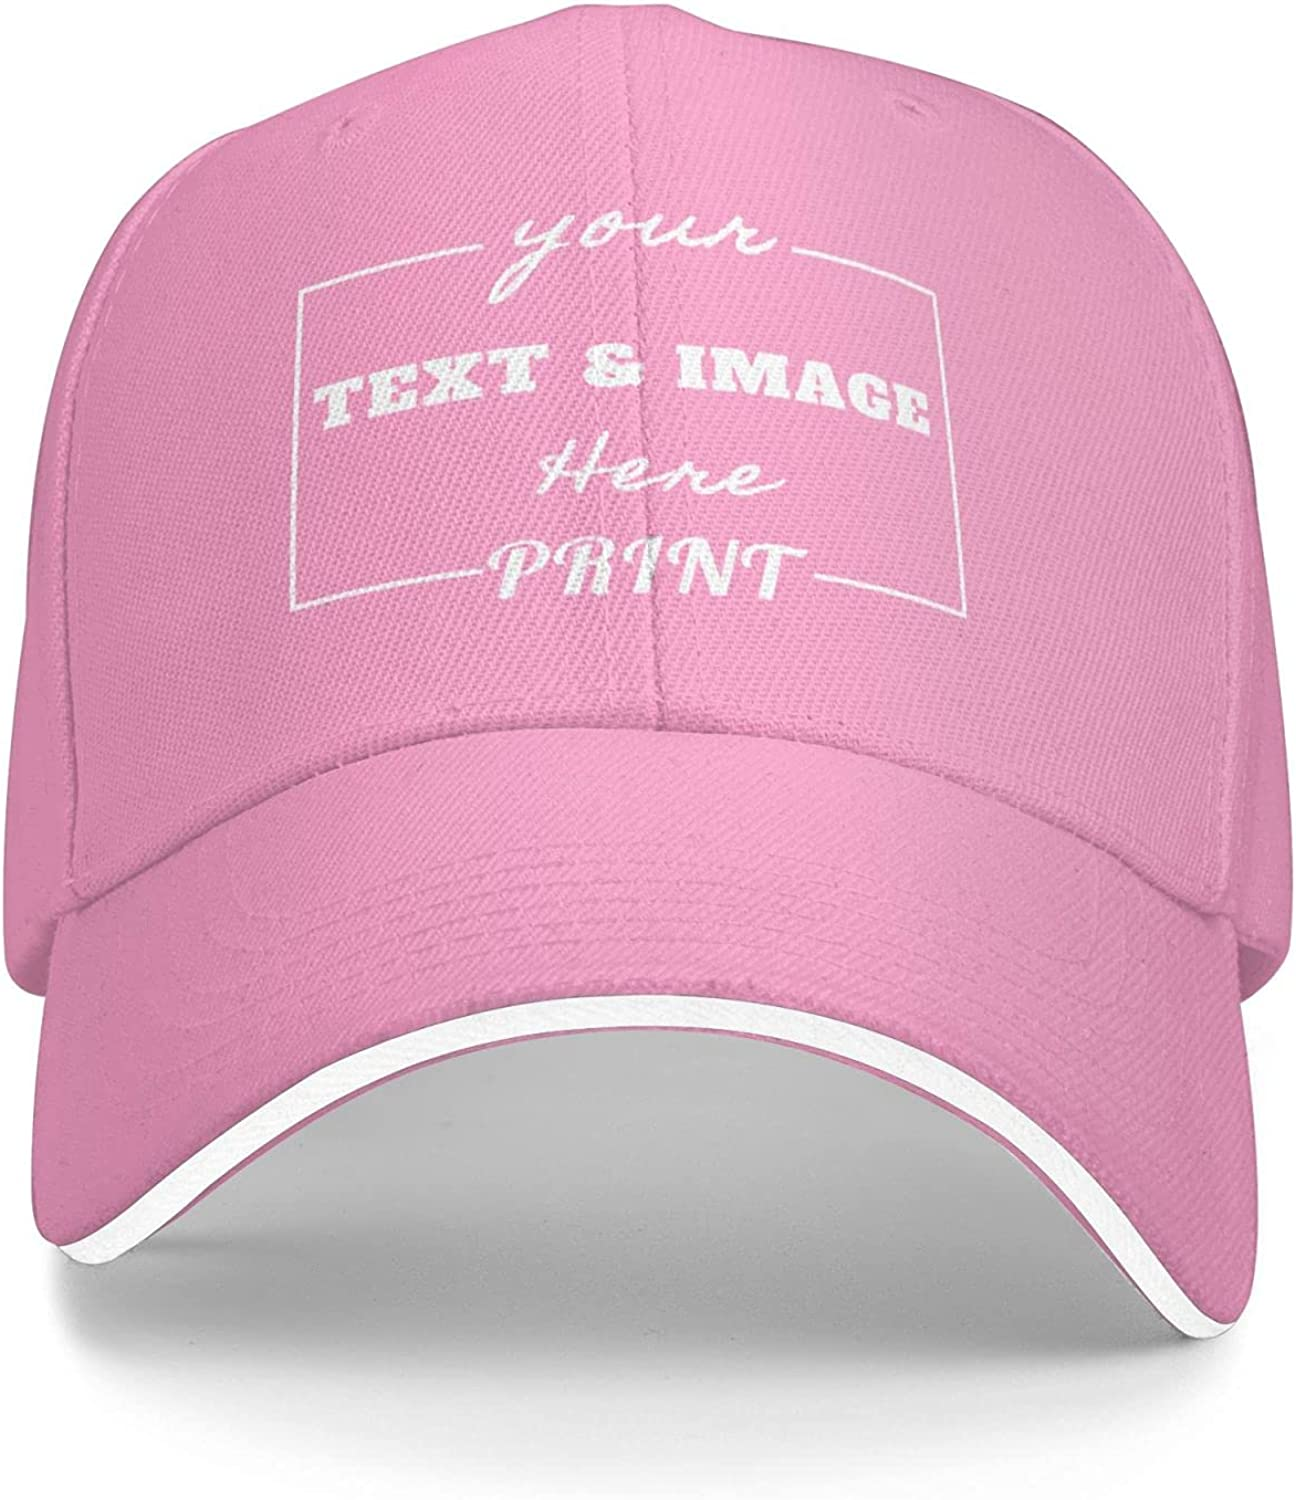 Design Your Own Hats Custom Baseball Cap with Your Text & Photo Personalized Adjustable Trucker Caps for Men & Women